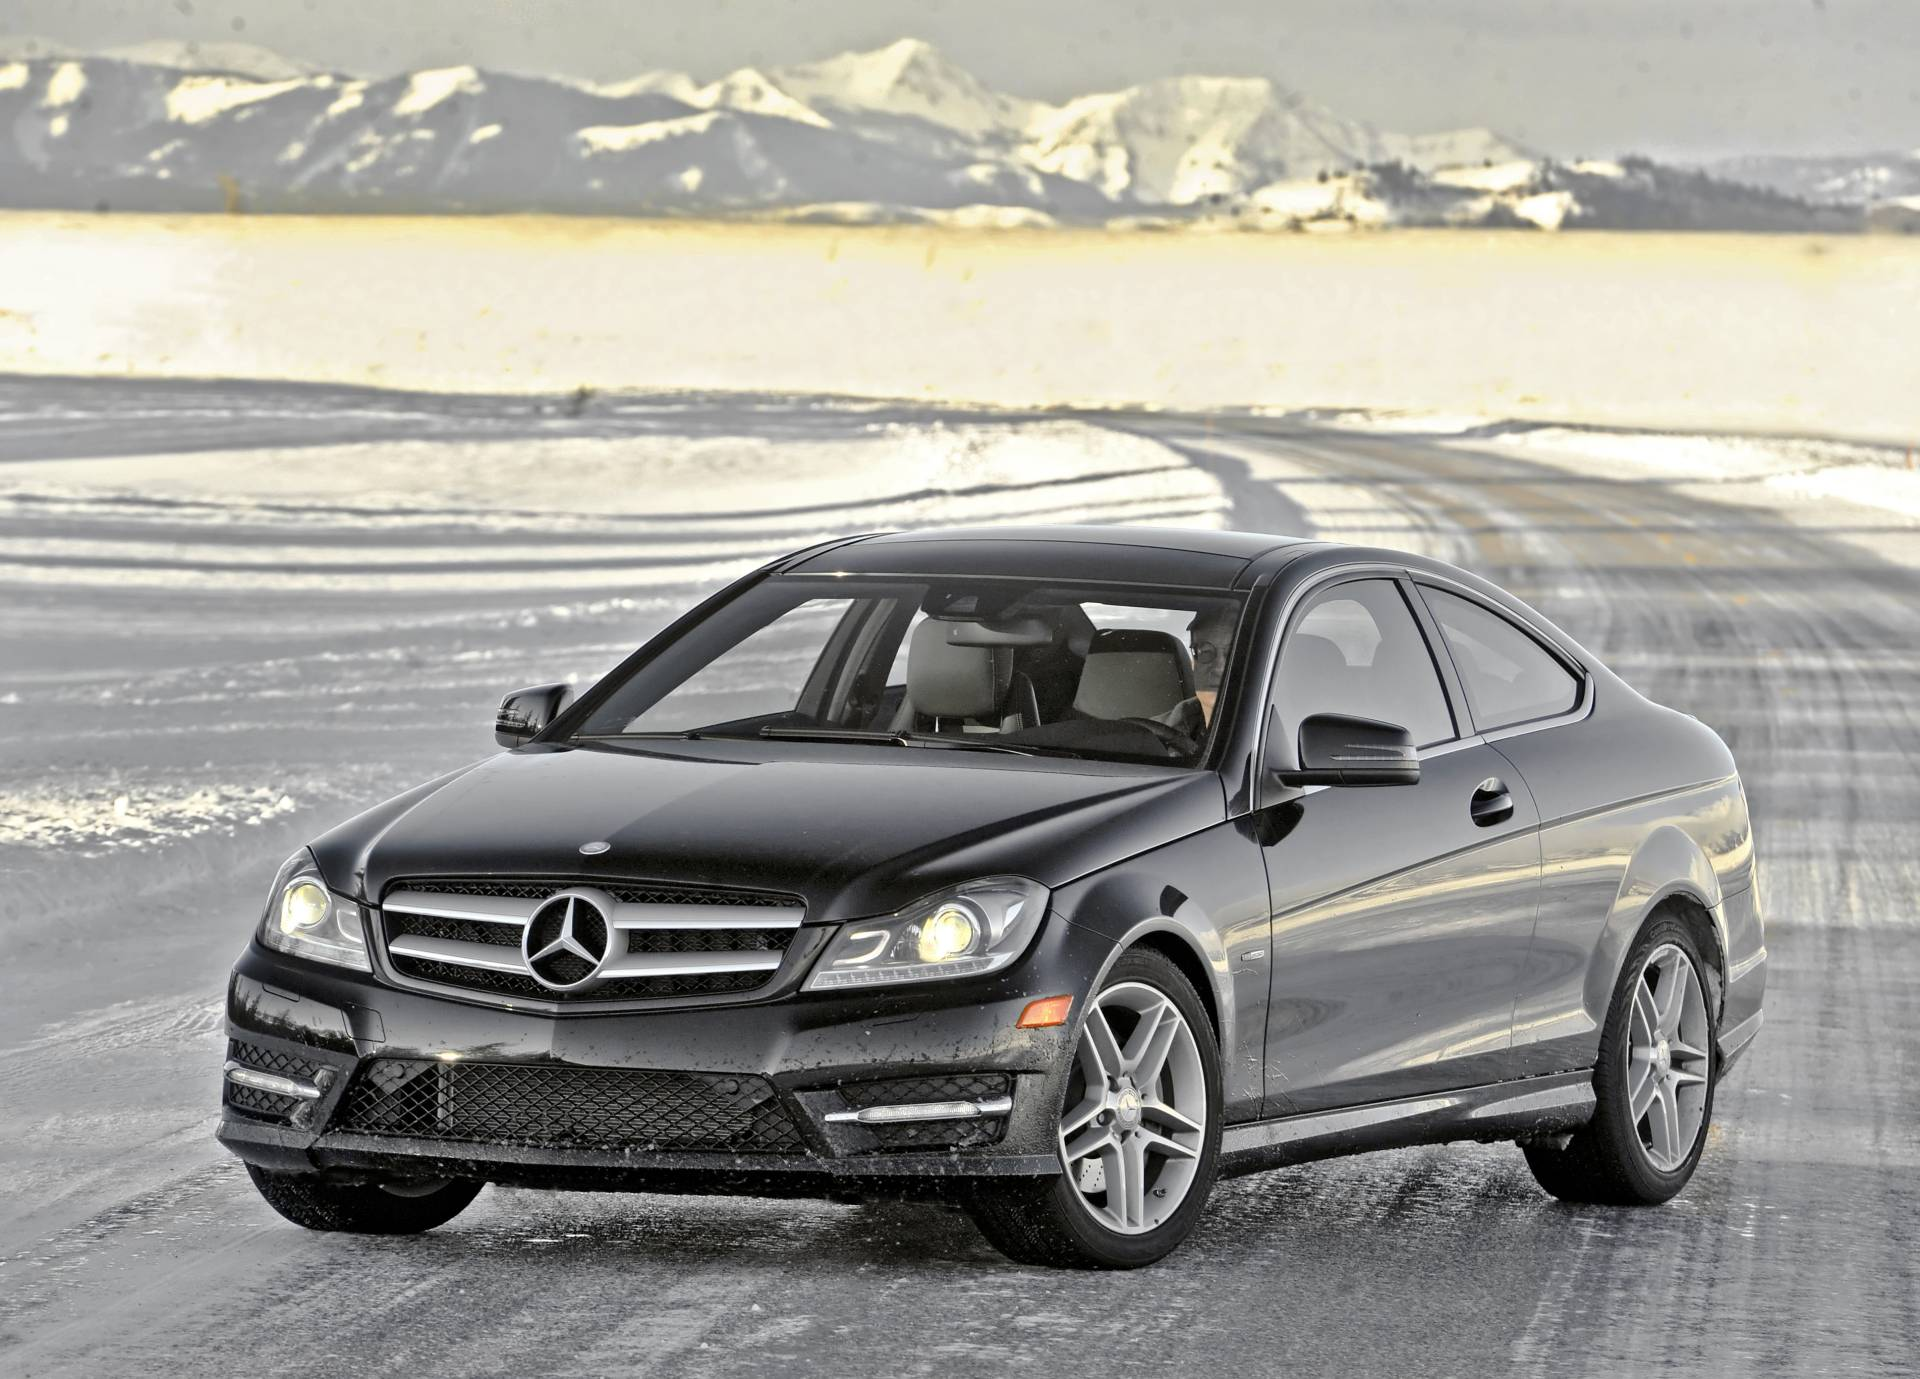 2013 mercedes benz c class news and information for Mercedes benz mercedes benz mercedes benz